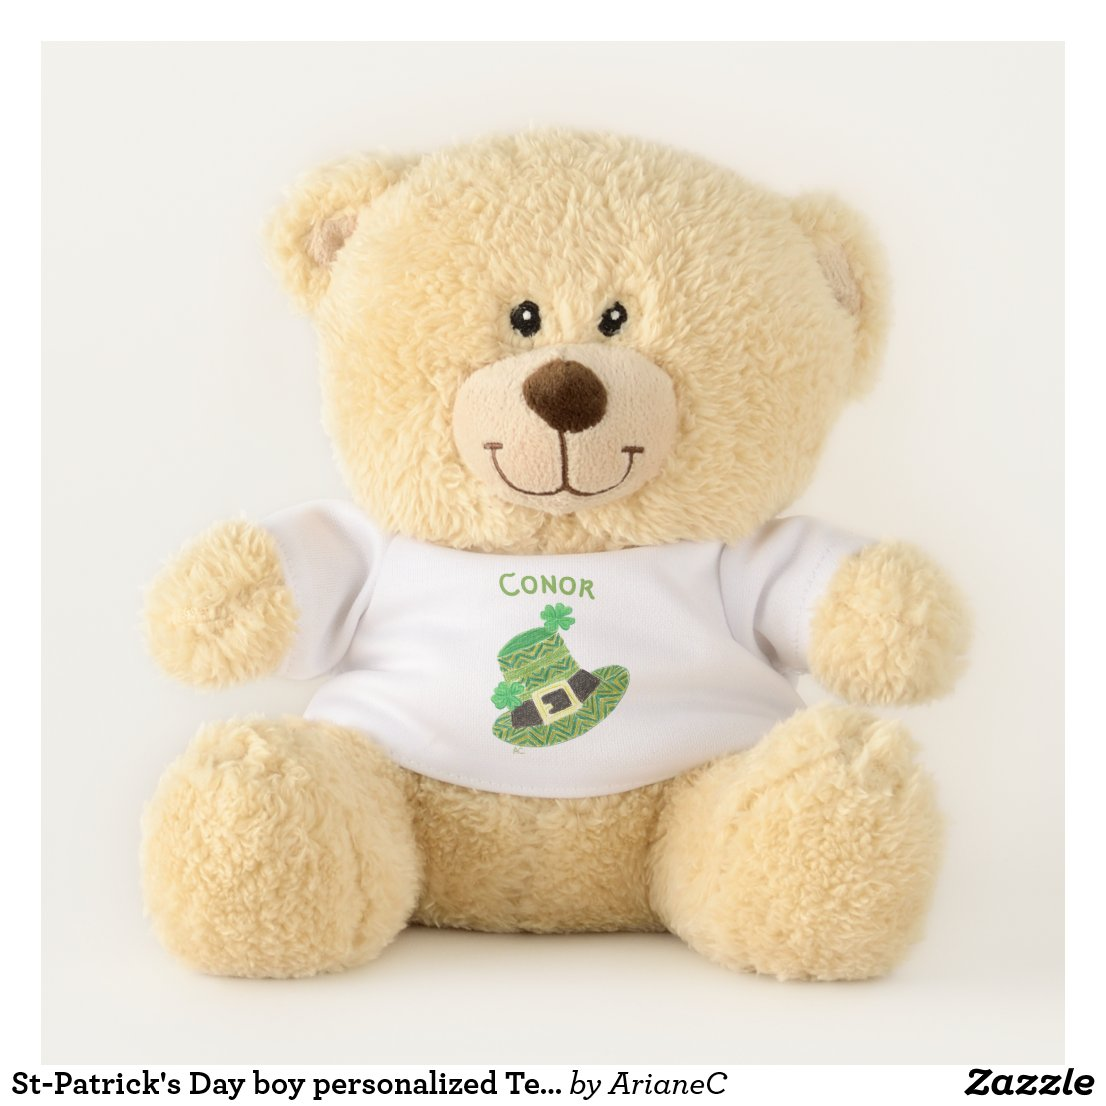 St-Patrick's Day Teddy bear